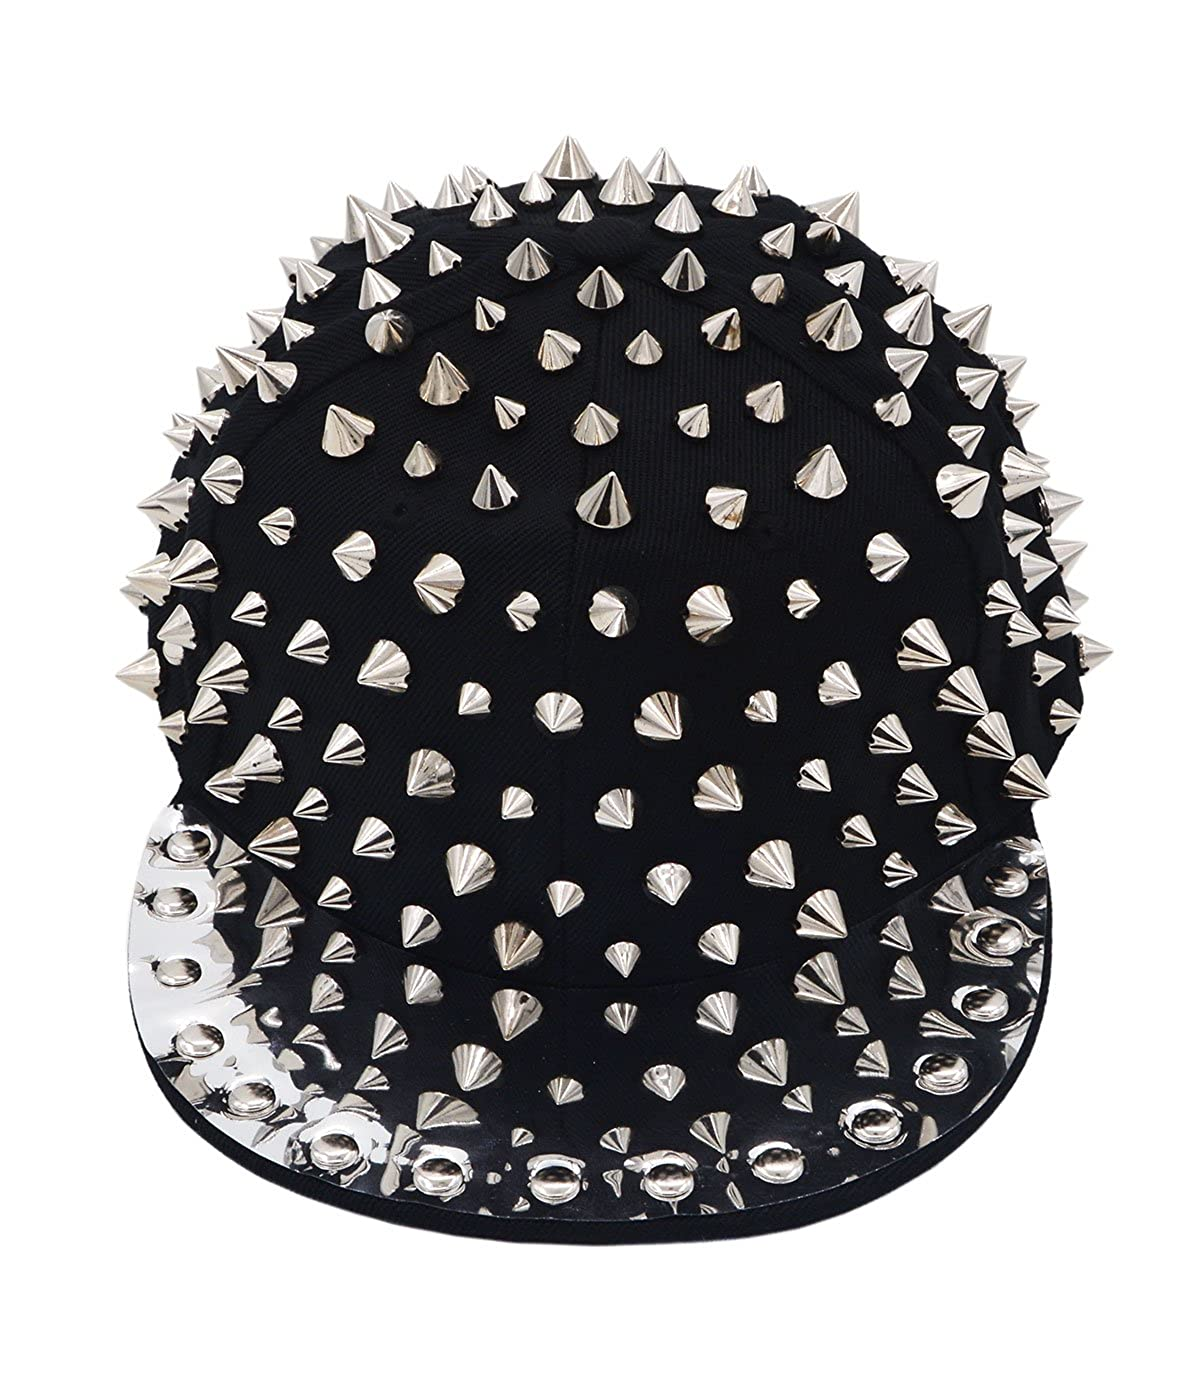 53d8e309687 VEGALI Fashion Unisex Baseball Cap Snapback Adjustable Hip Hop Rock hat Punk  Rivets Spike Spiky Studded Button (Black-A1) at Amazon Men s Clothing store